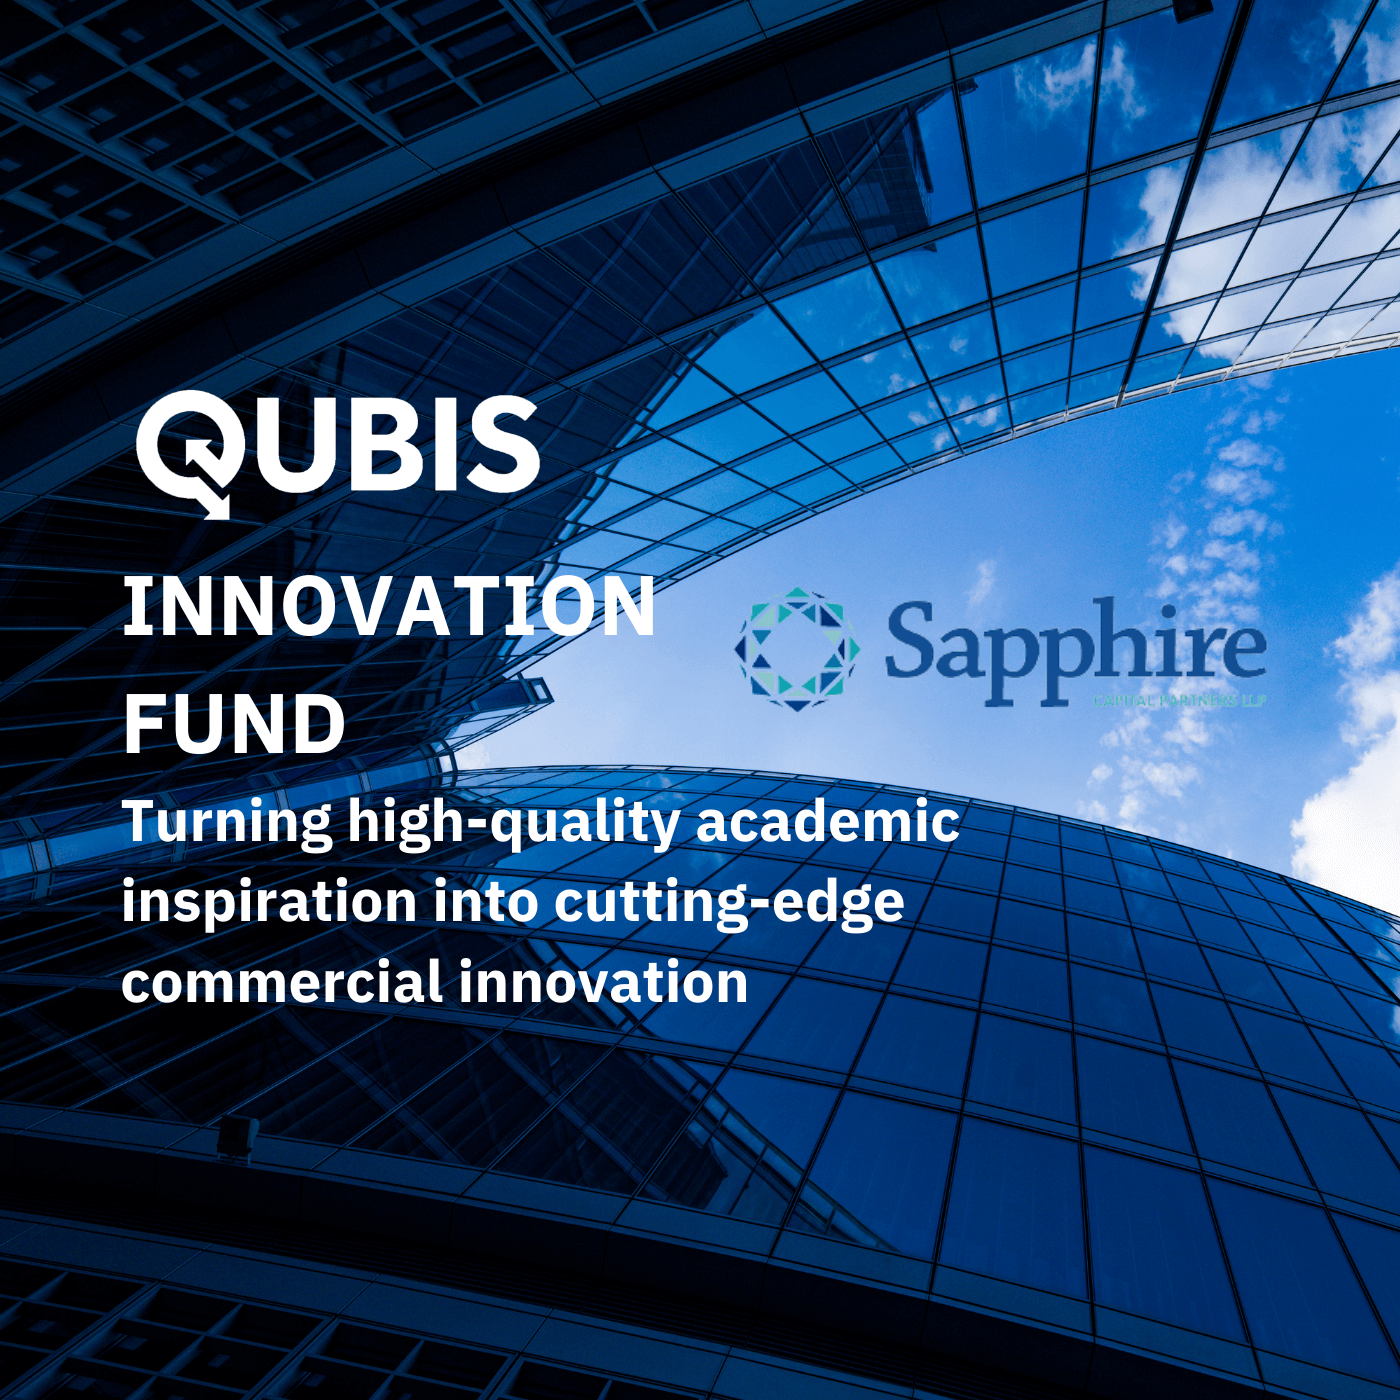 QUBIS Ltd launches the QUBIS Innovation Fund in conjunction with Sapphire Capital Partners LLP